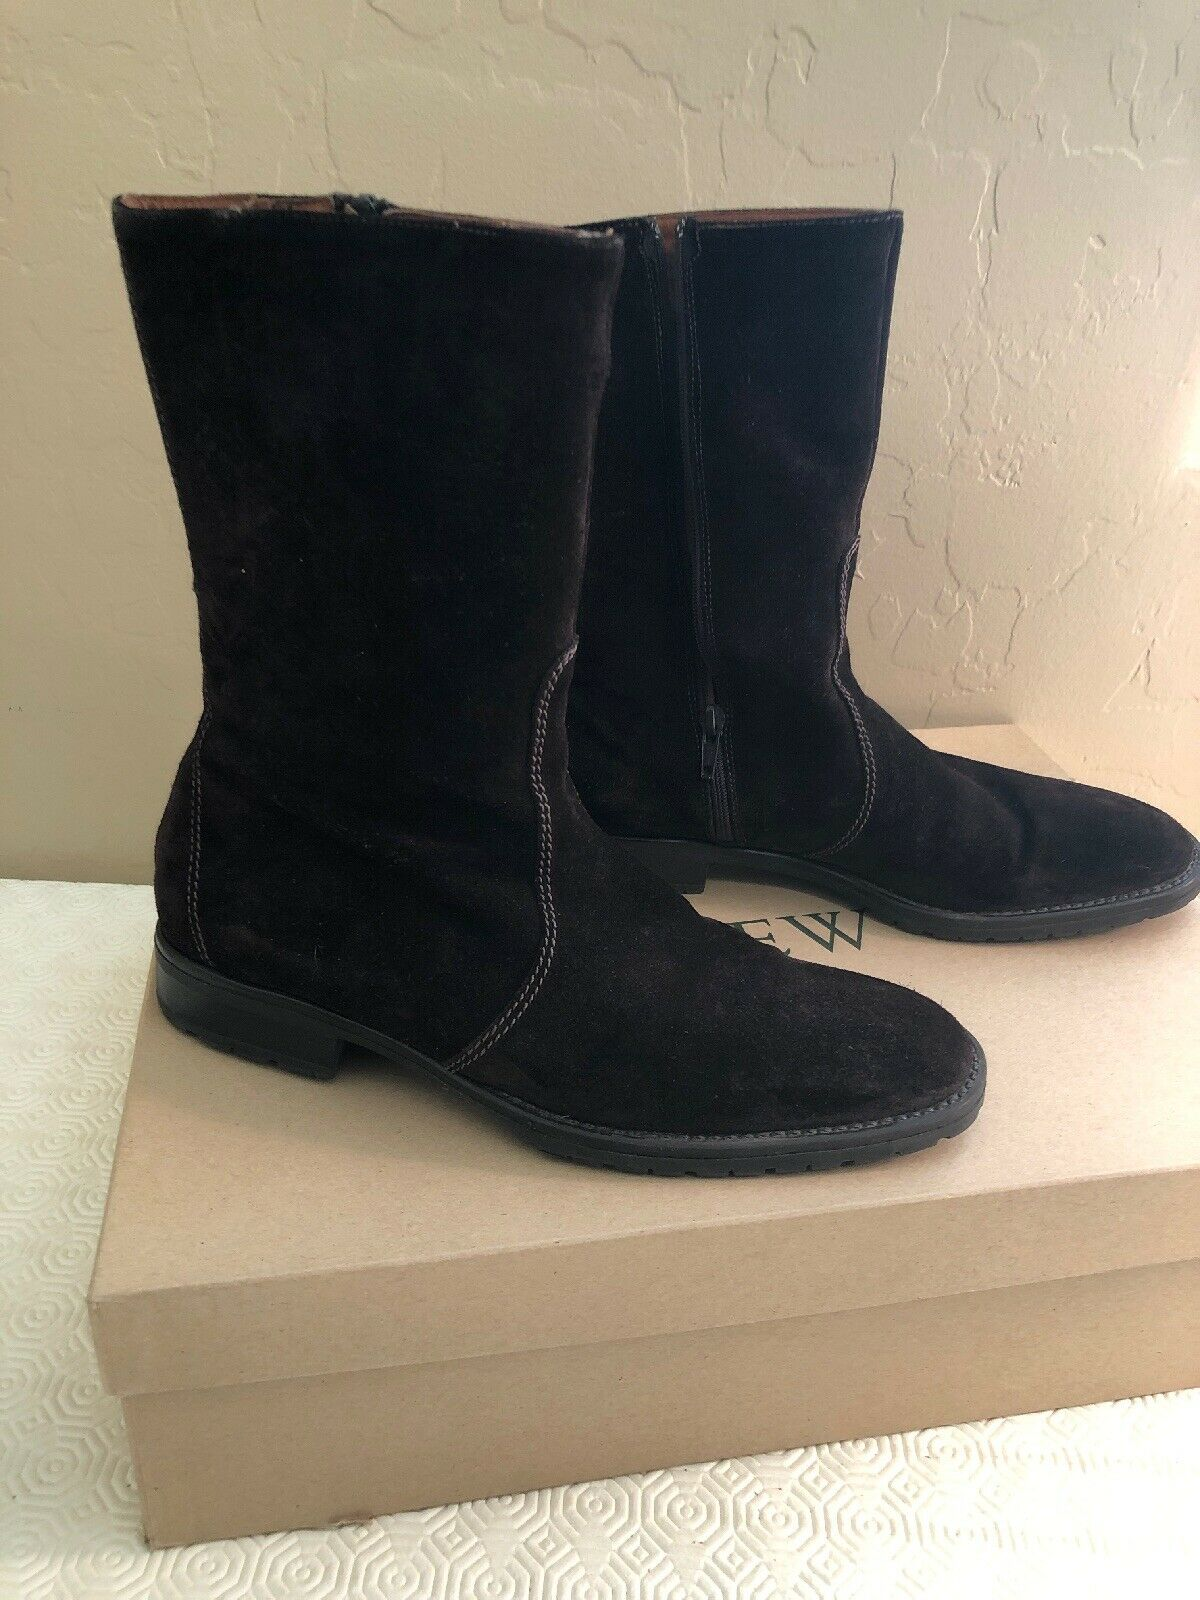 WOMENS J. CREW BROWN SUEDE PULL ON MID CALF WINTER BOOTS SZ 8.5 NEW